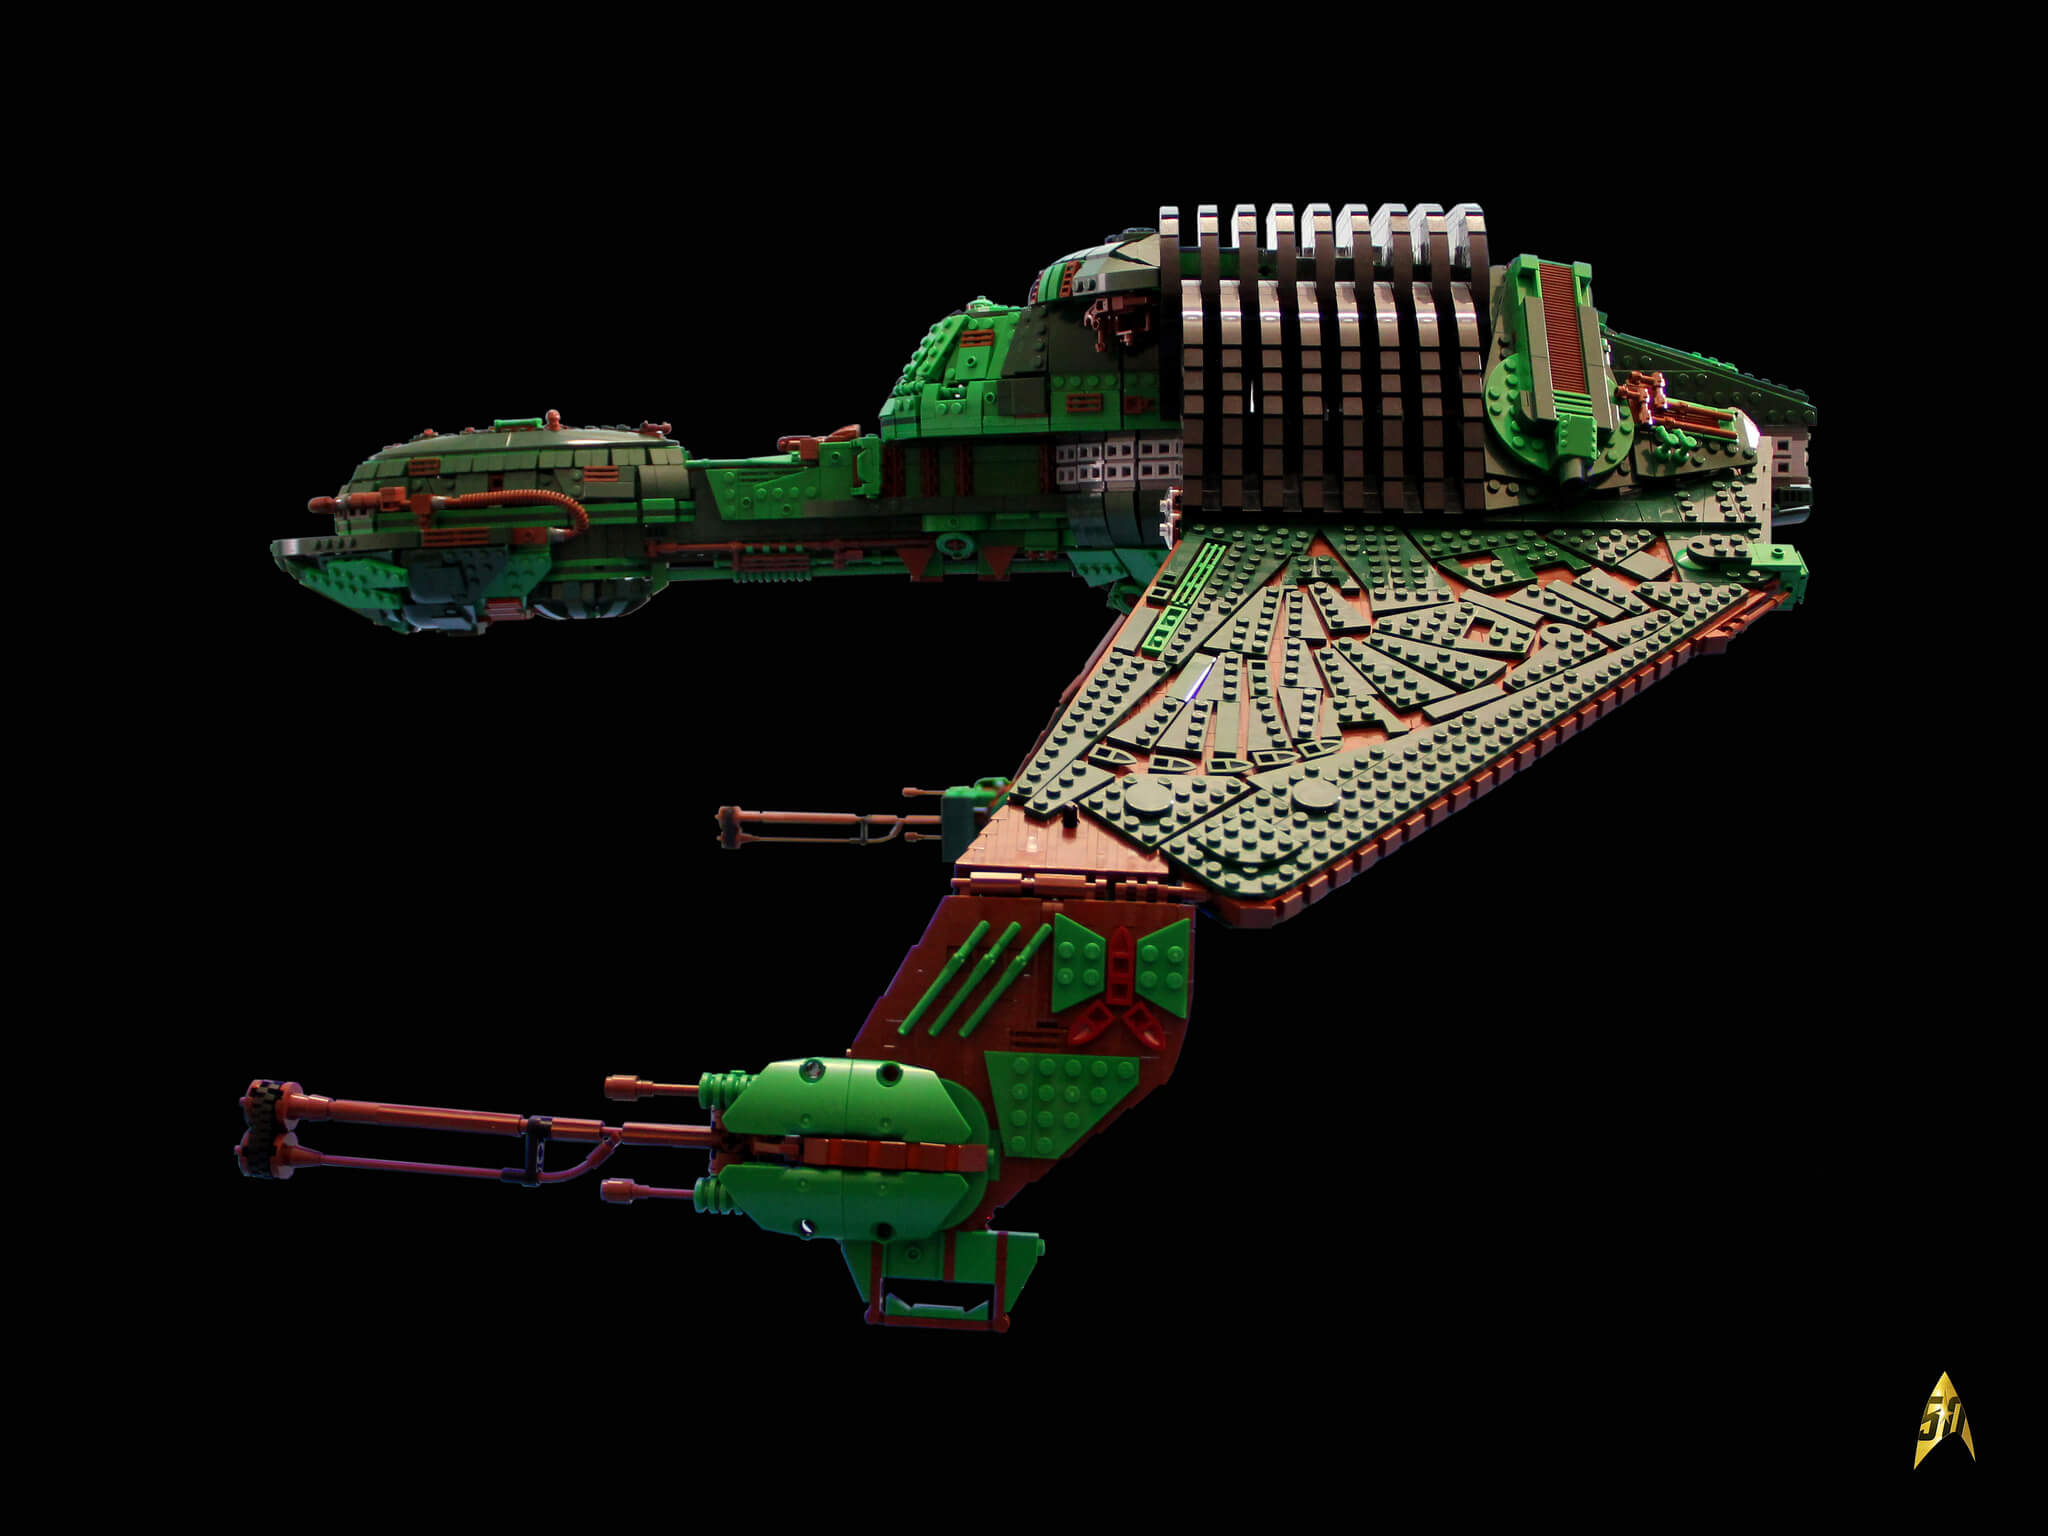 Lego Klingon Bird Of Prey Built From 25 000 Lego Bricks